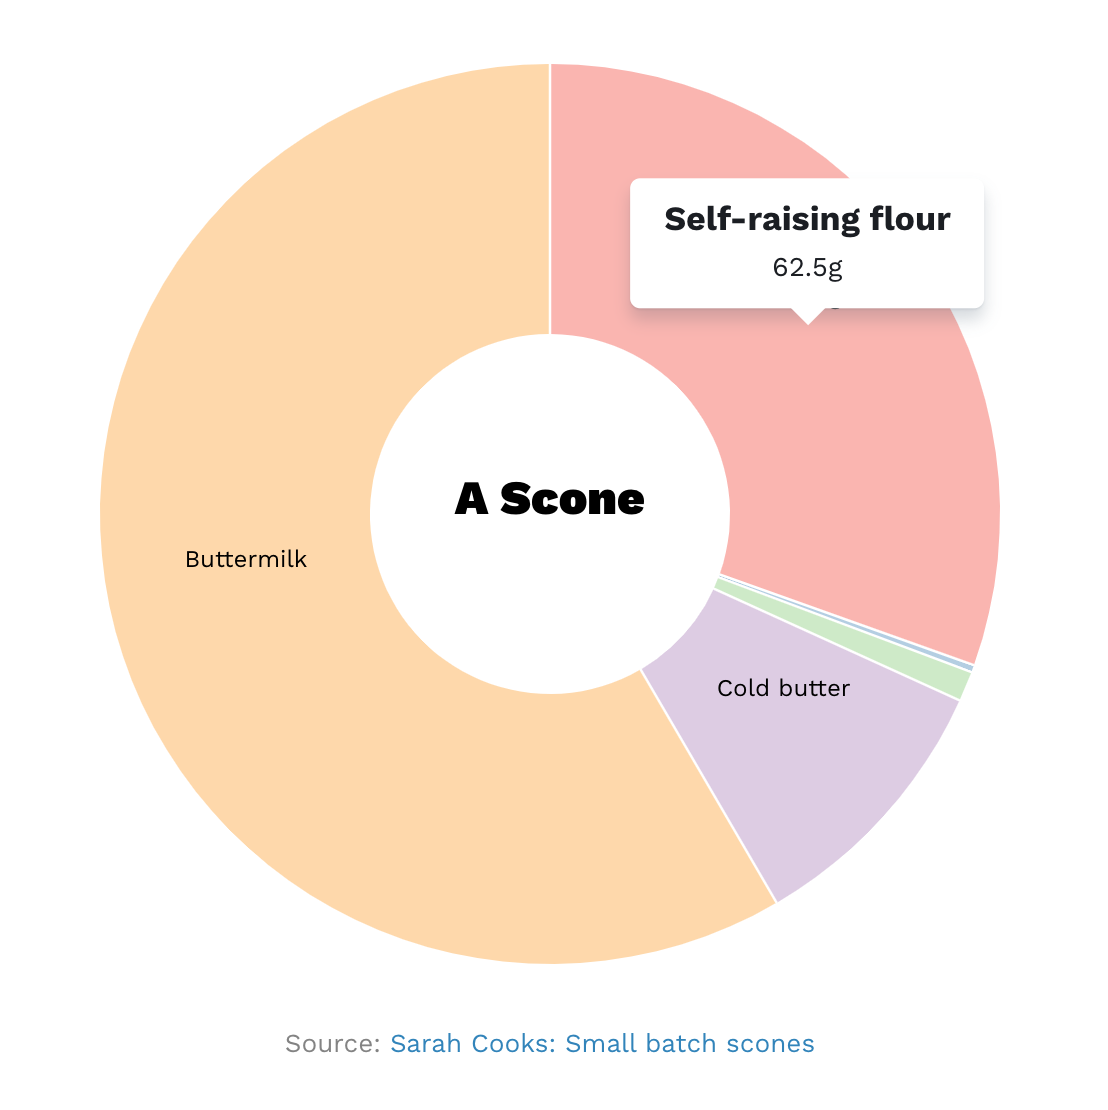 A donut chart of small batch scones ingredients, Buttermilk, Cold butter, and 62.5g Self-raising flour, from Sarah Cooks